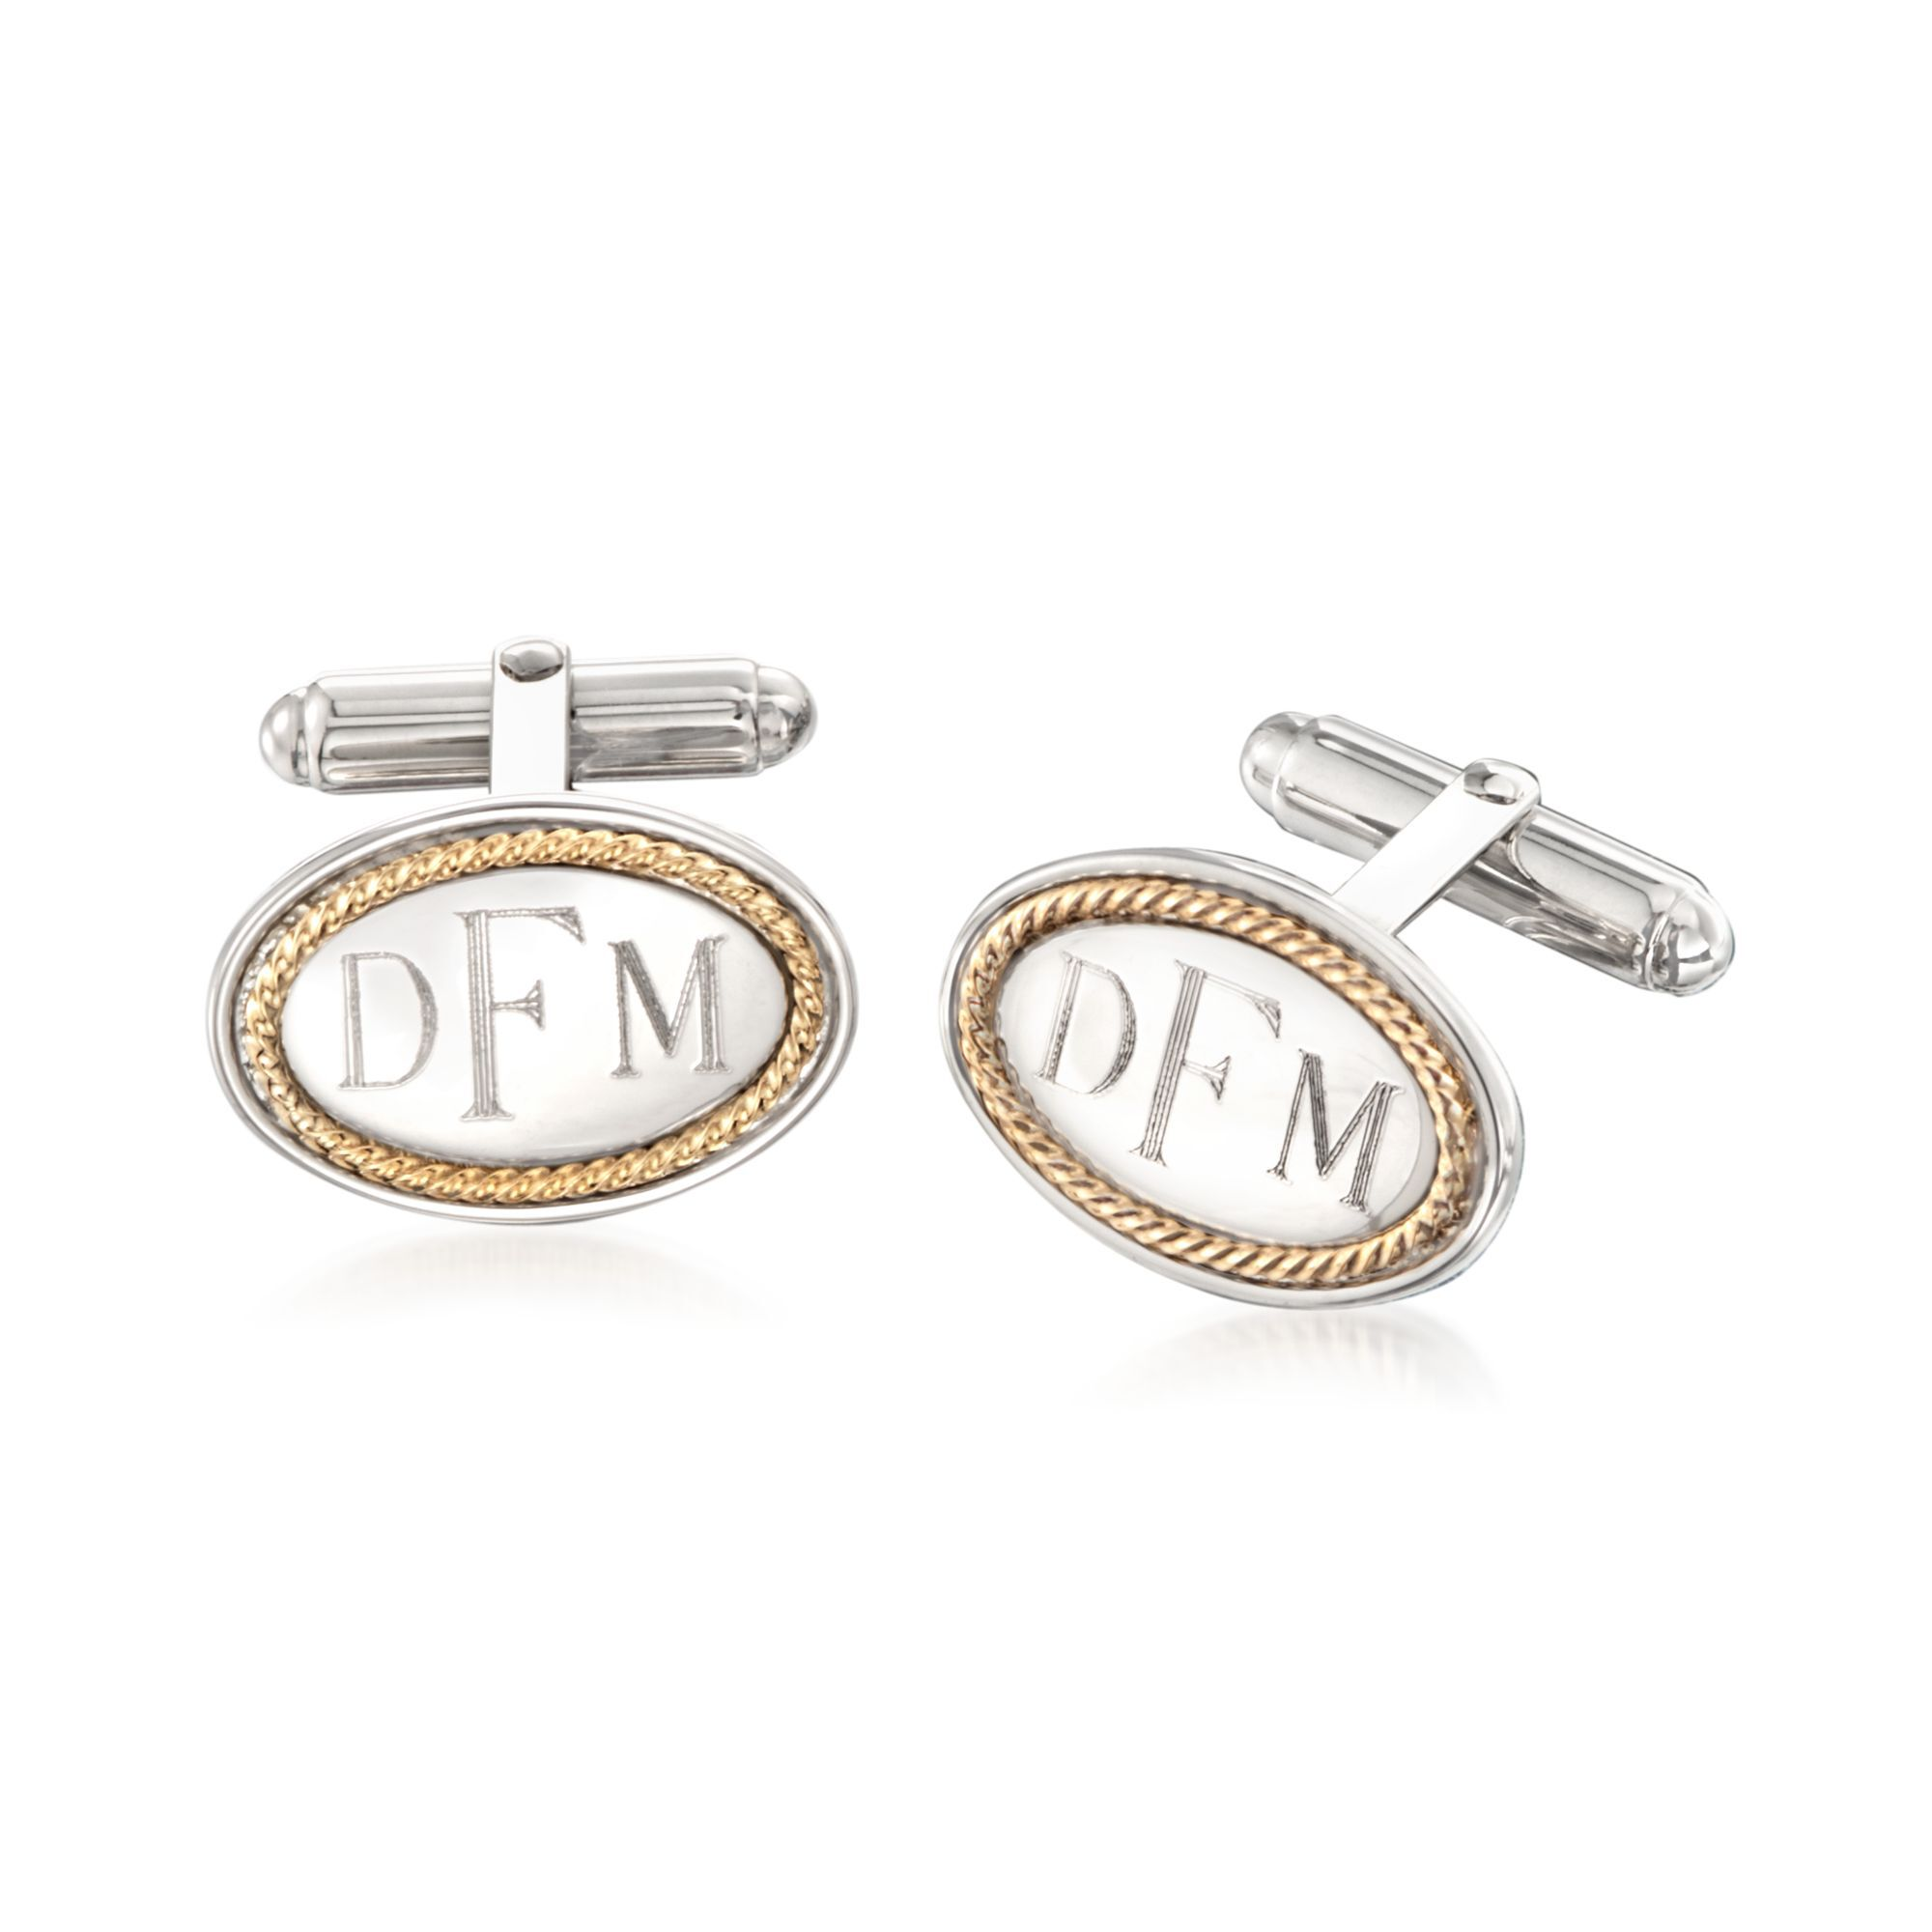 Made in England Sterling Silver and 18KT Yellow Gold Chain Link Cufflinks